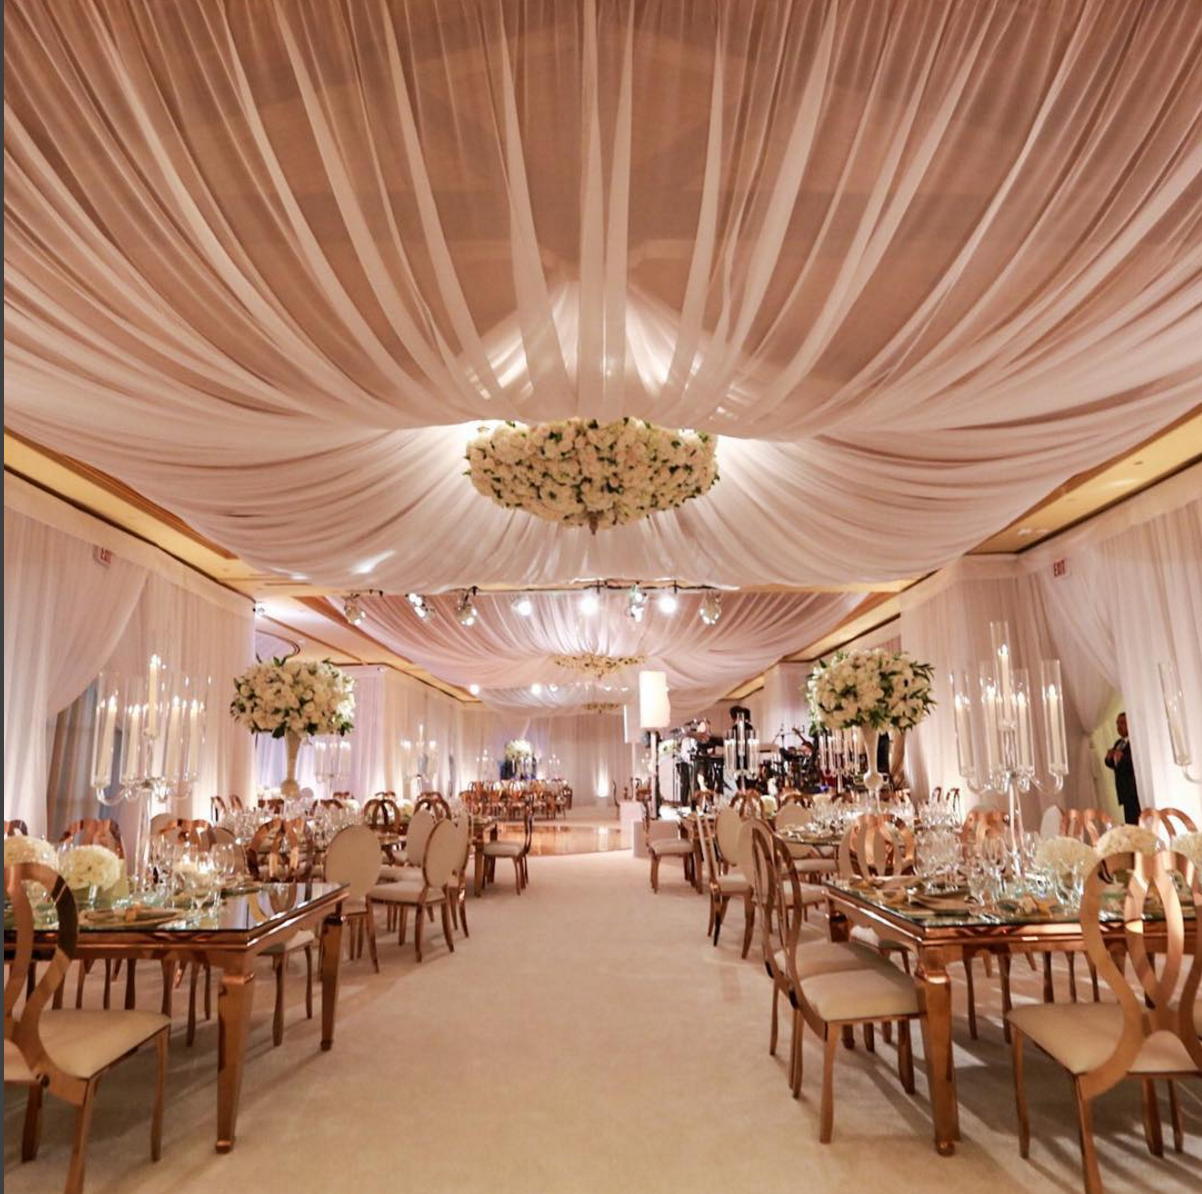 Wedding Decorations Chairs Receptions Knoll Chadwick Chair Instructions Bloom Box Designs Reception Indoor